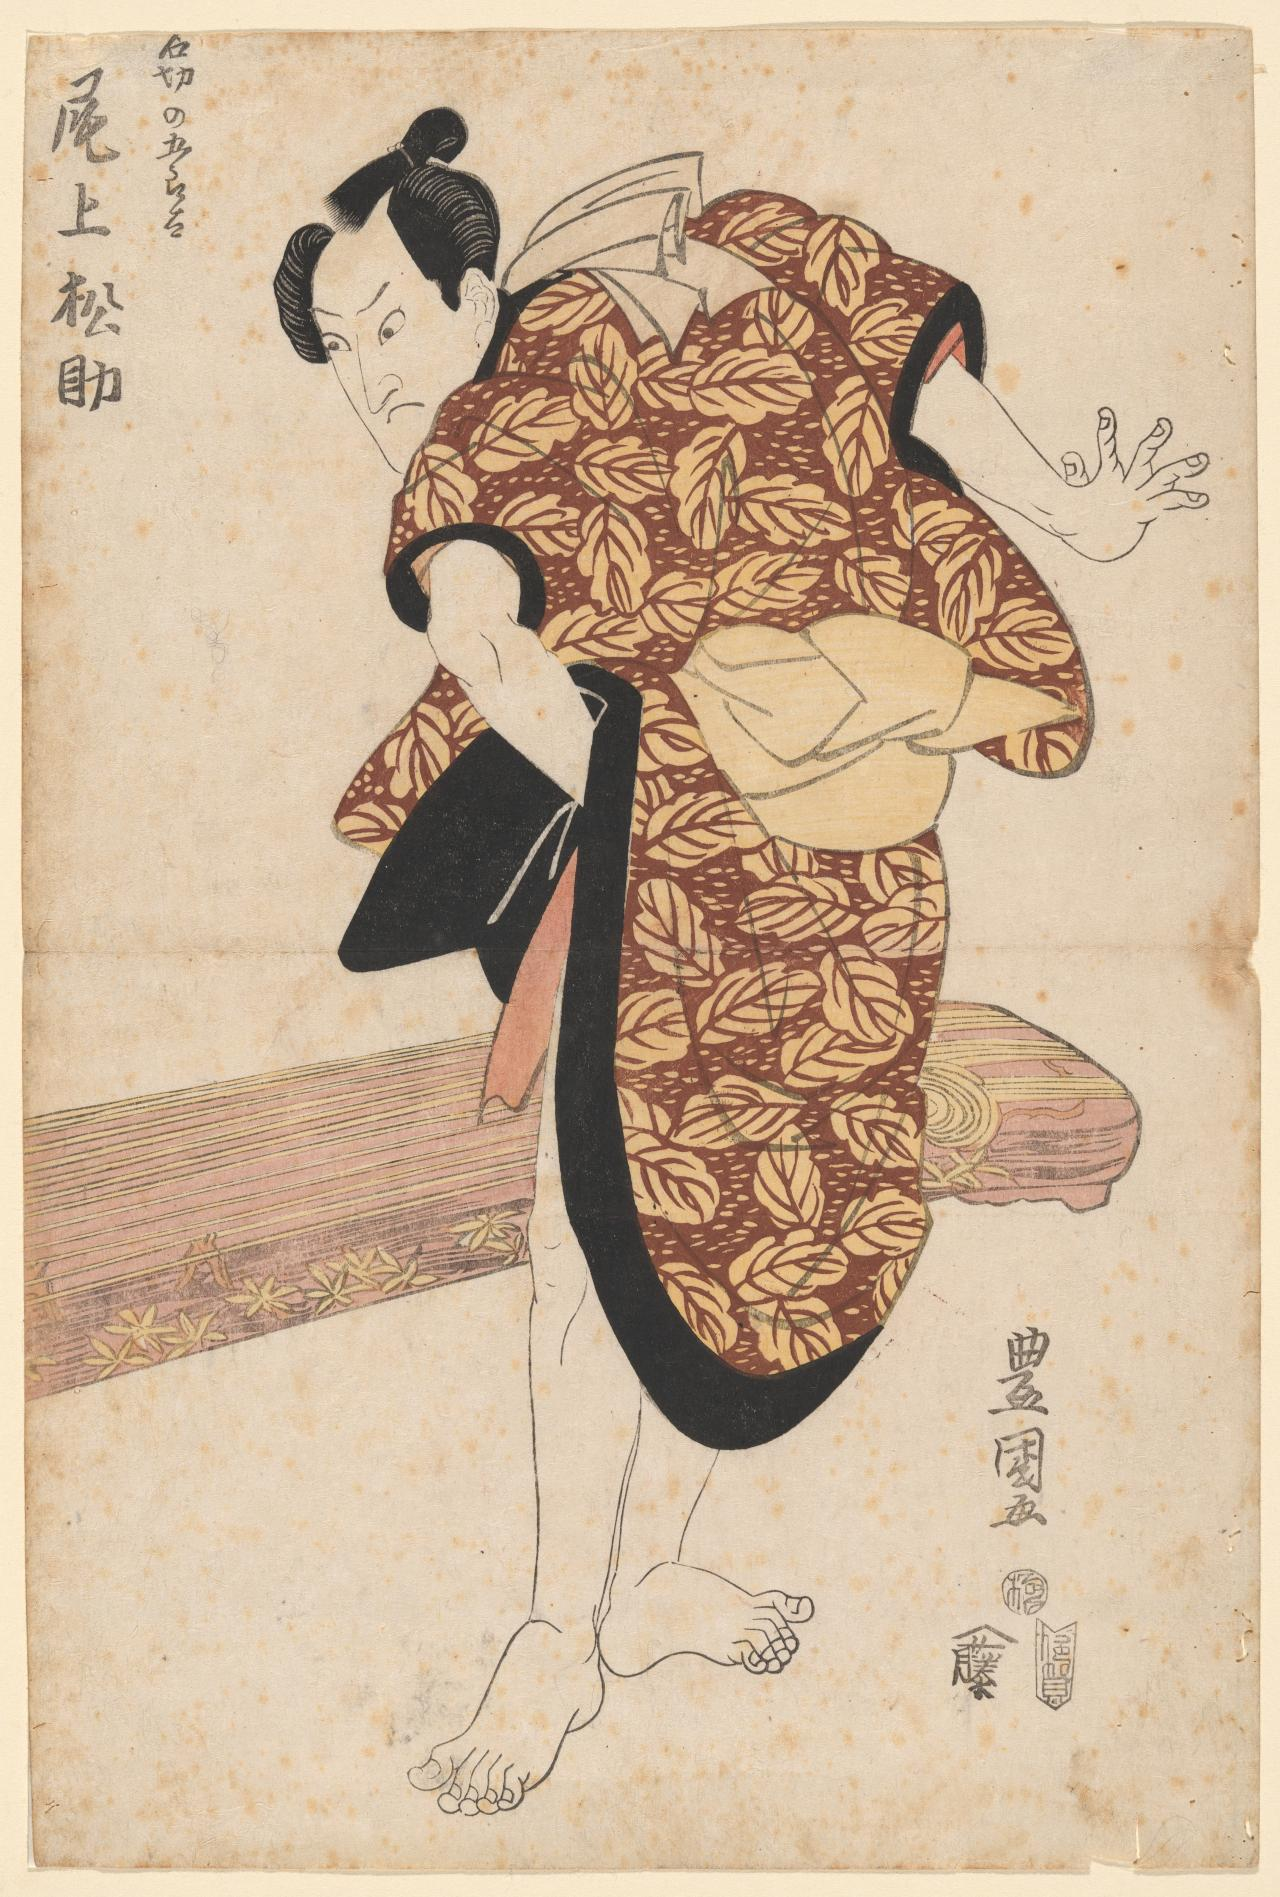 The actor Onoue Matsusuke as the stonemason Gorōta Matsusuke